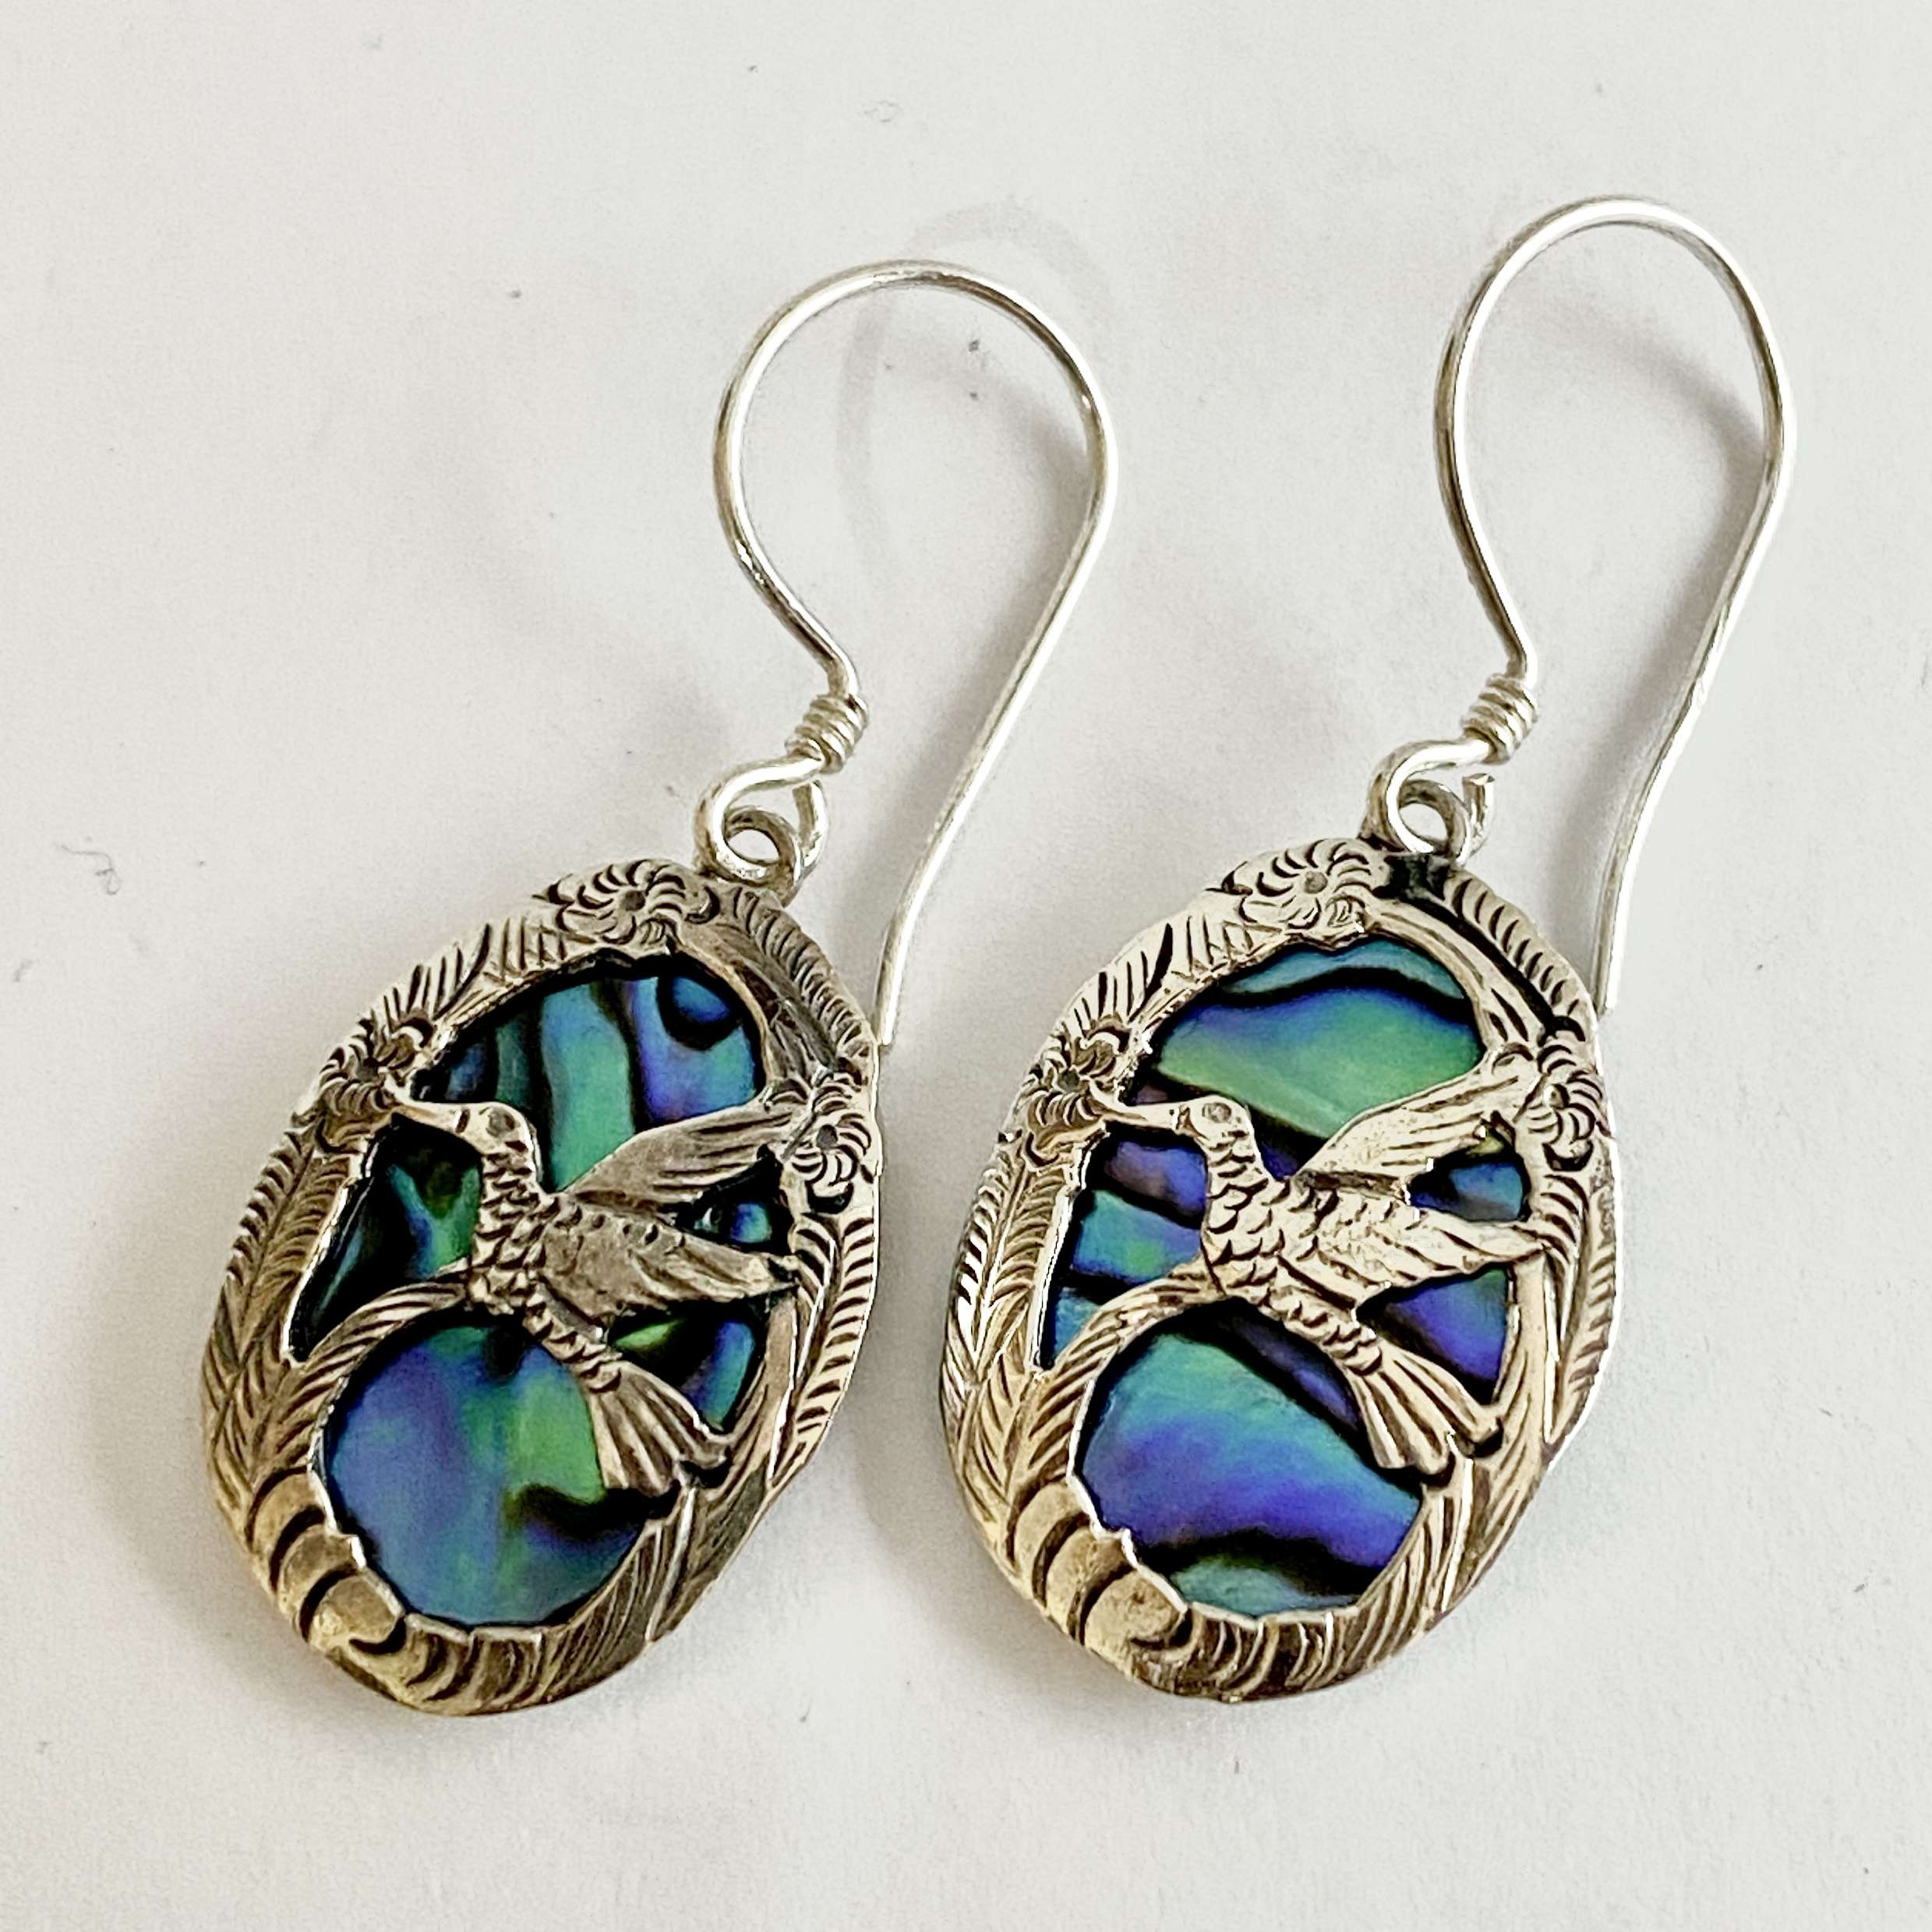 BALI 925 STERLING SILVER BIRD EARRINGS WITH ABALONE